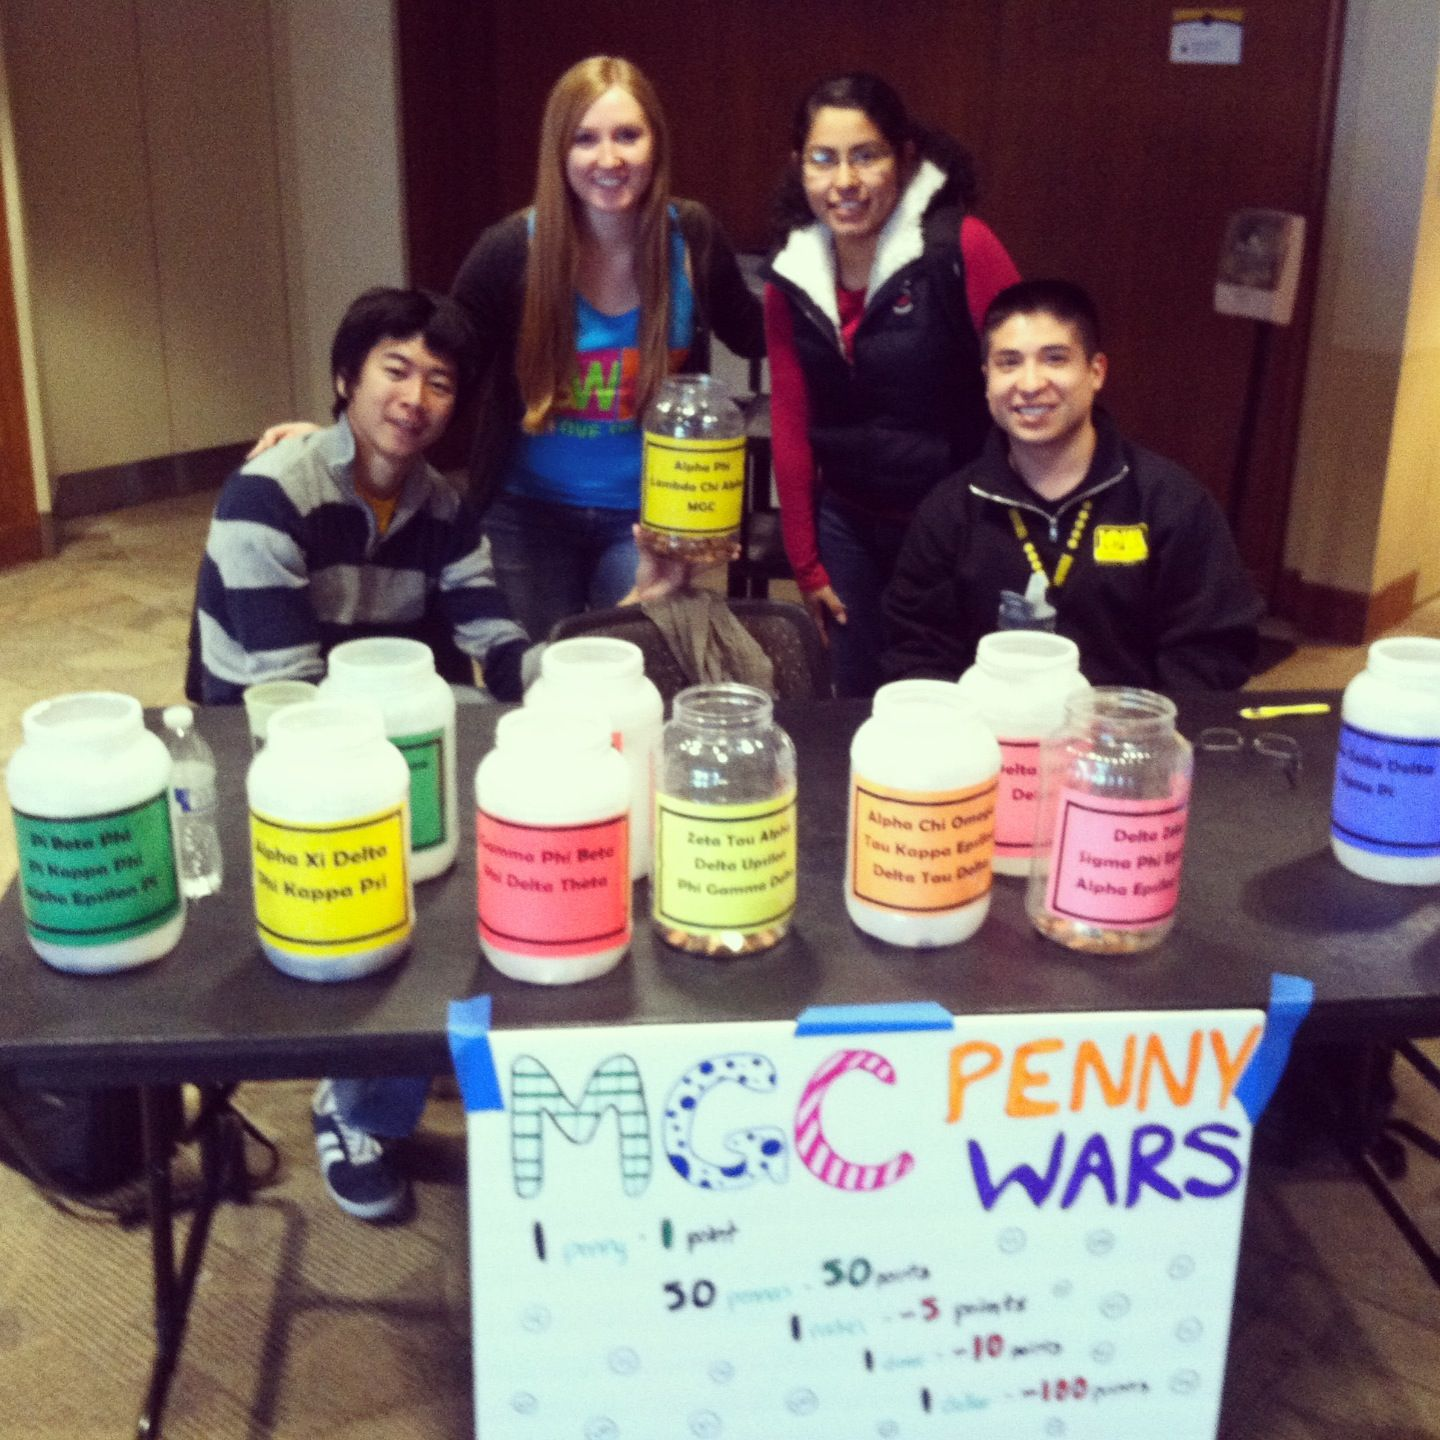 fundraising idea: penny wars fundraiser. every fraternity and